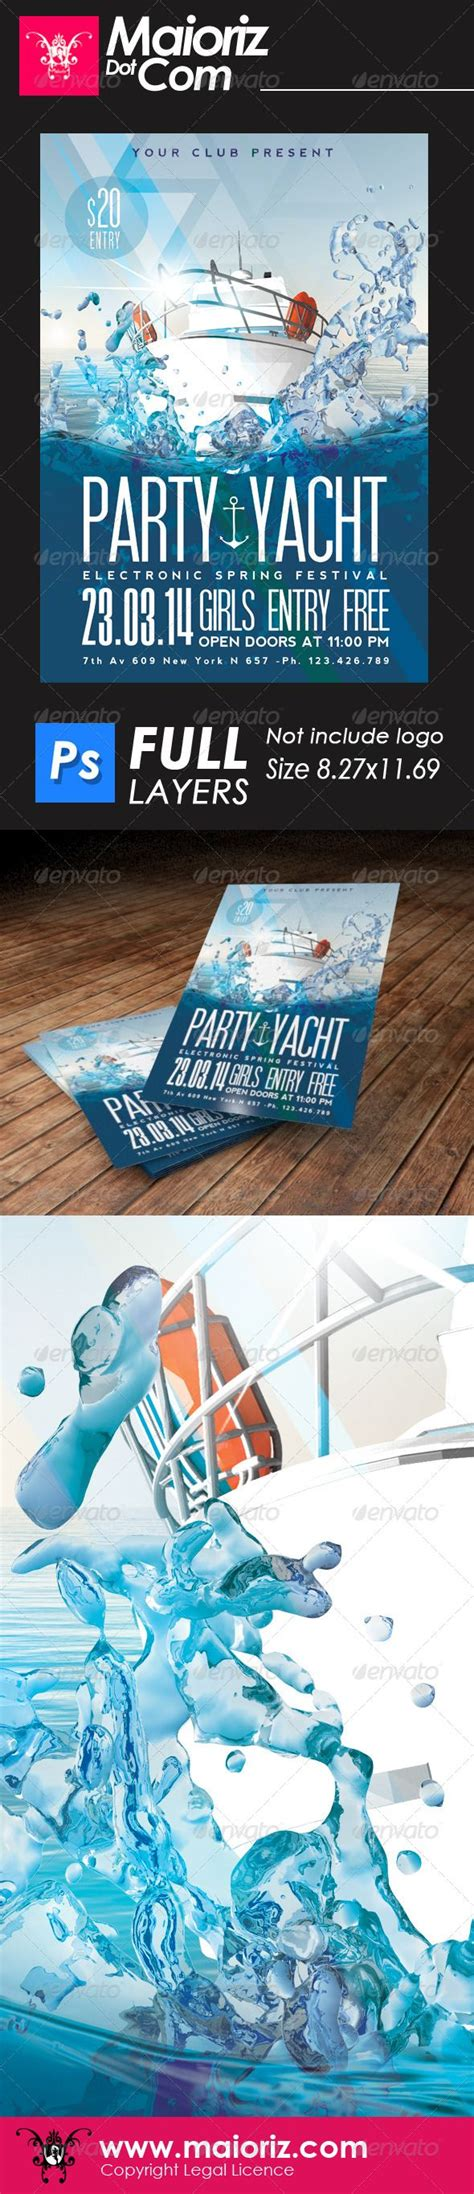 flyer design dubai yacht party flyer menorca dubai and cancun